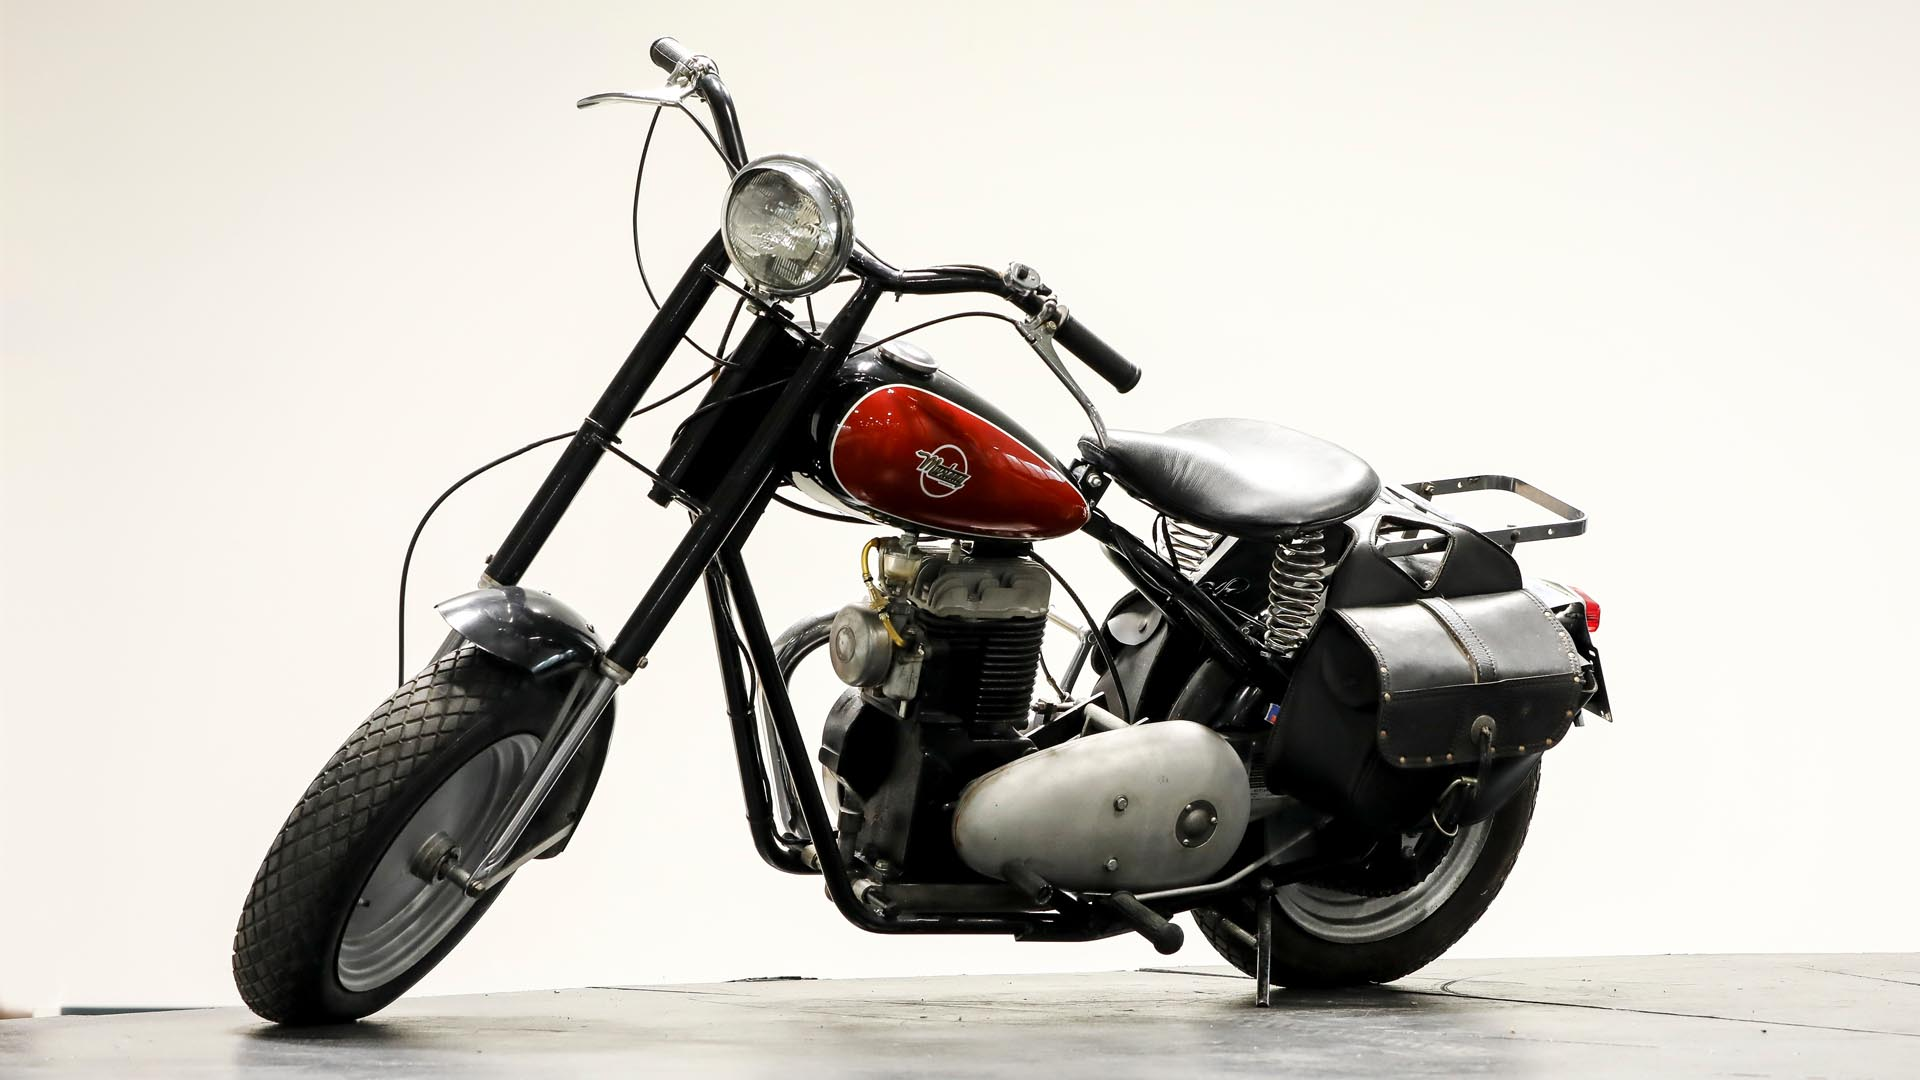 1957 Mustang Stallion Model 8 Motorcycle